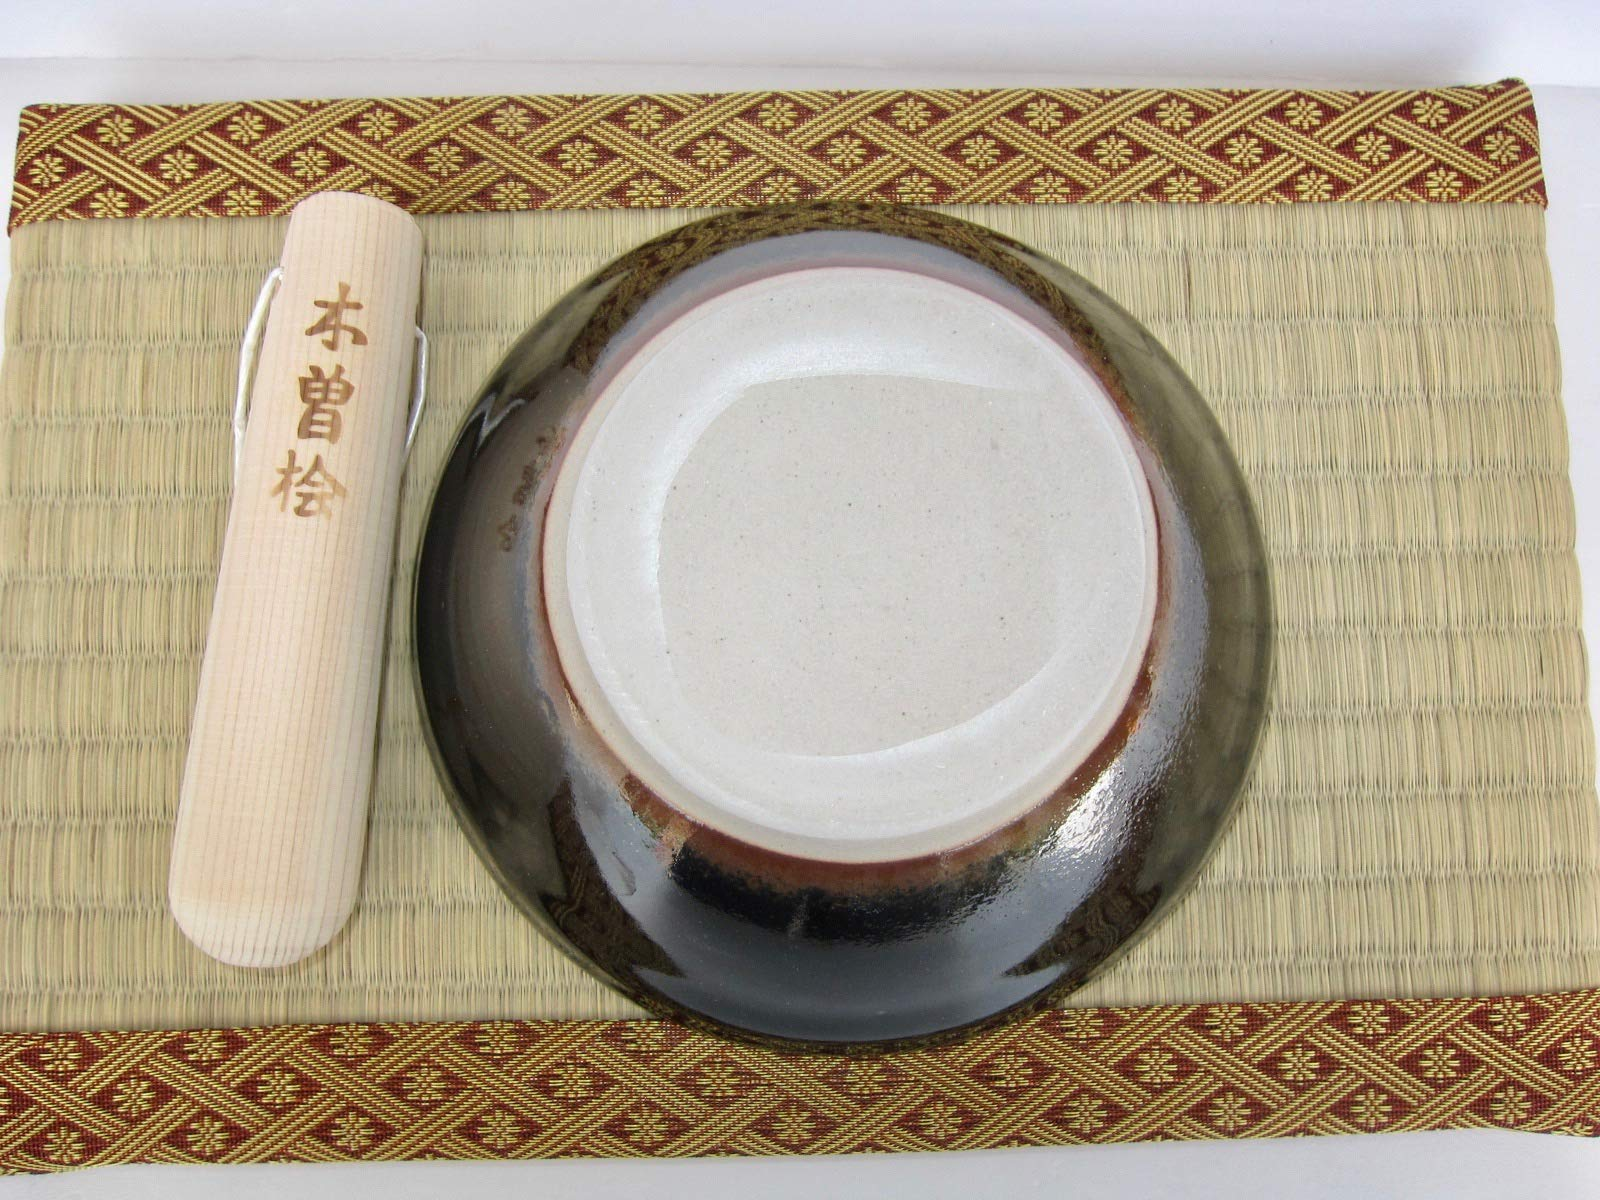 Made in Japan Ripple Ridge Mortar & Pestle (Suribachi & Surikogi) Set Small 5.91inches, for Both Right and Left Handed, Black, Authentic Mino Ware Pottery by Mino Ware